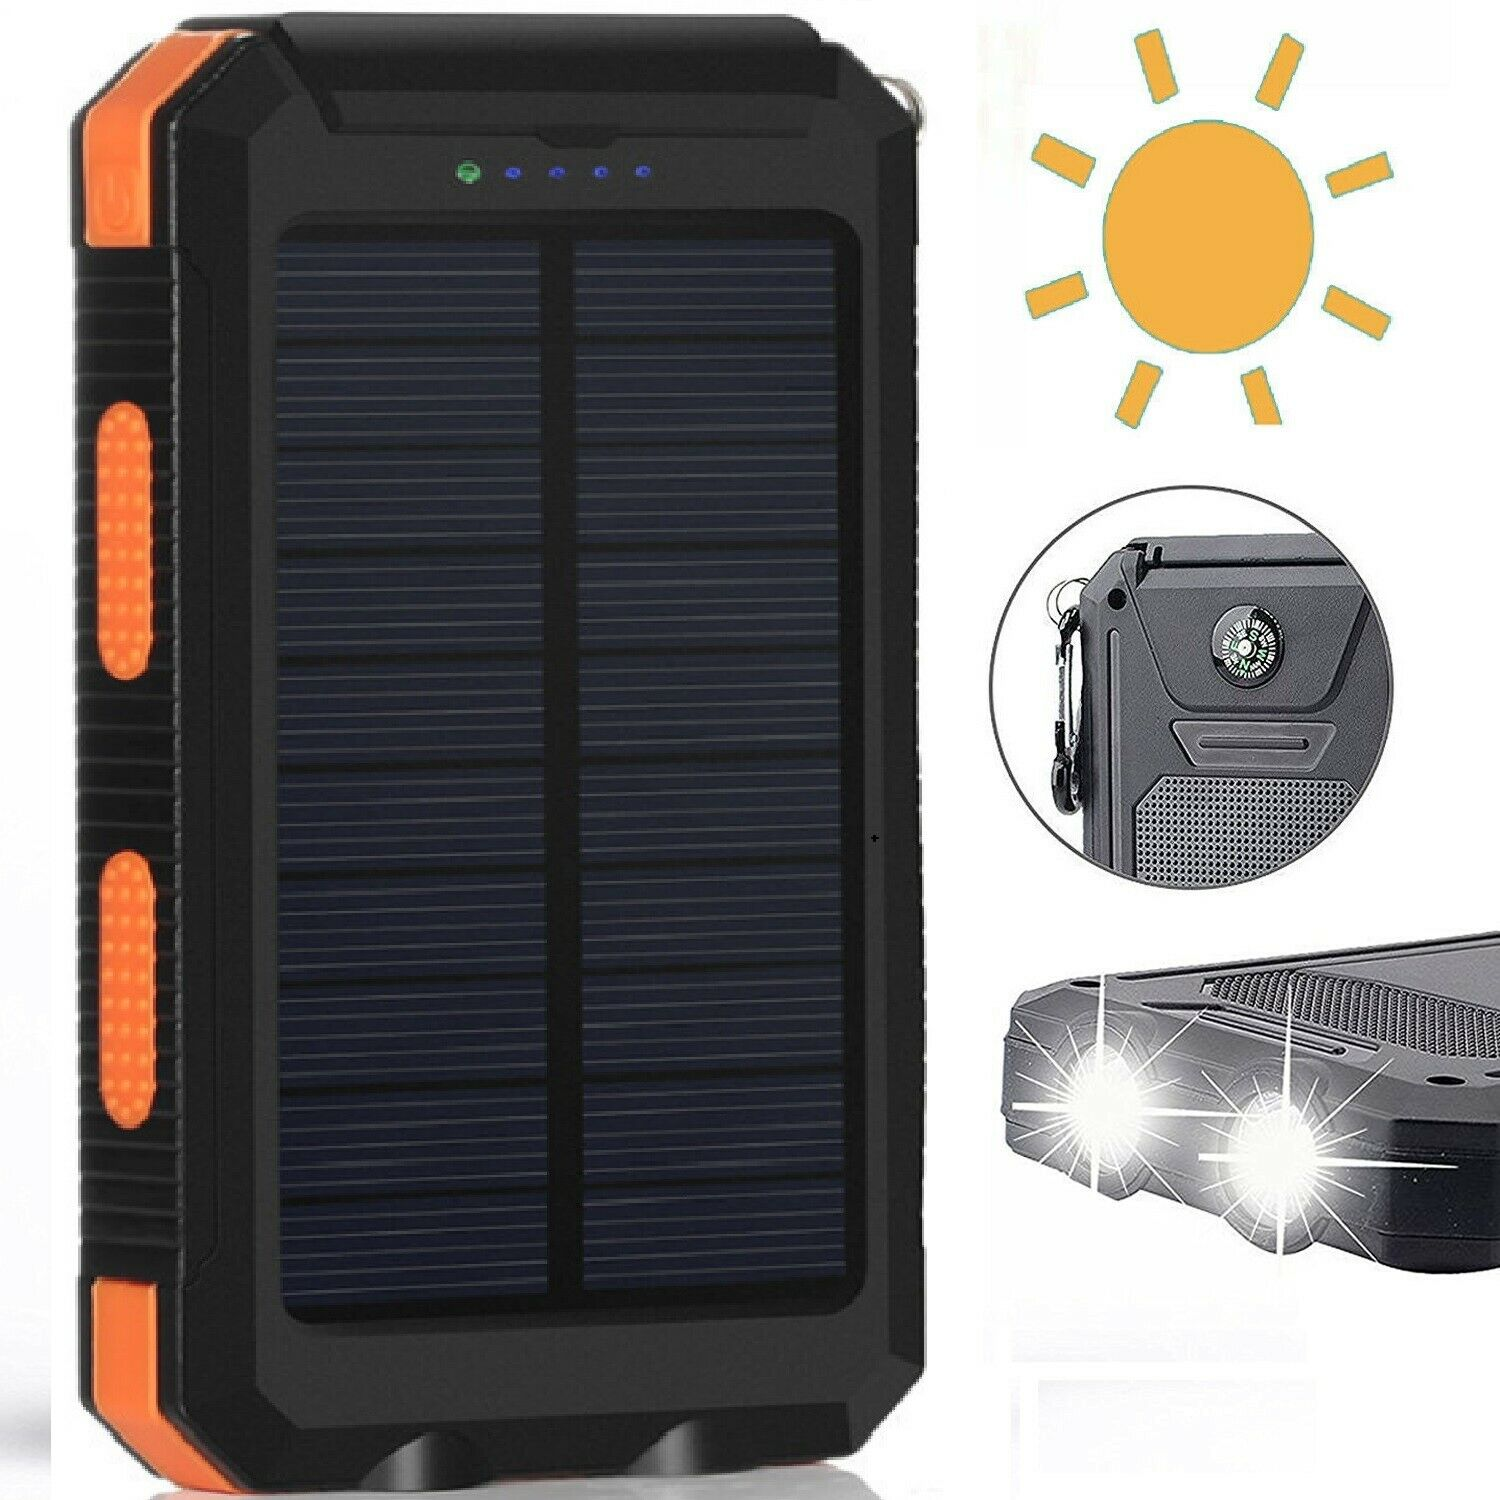 Waterproof Solar Power Bank 500000mah Portable Battery Charger Red Original Anker Micro Usb 10ft 1 Of 4free Shipping